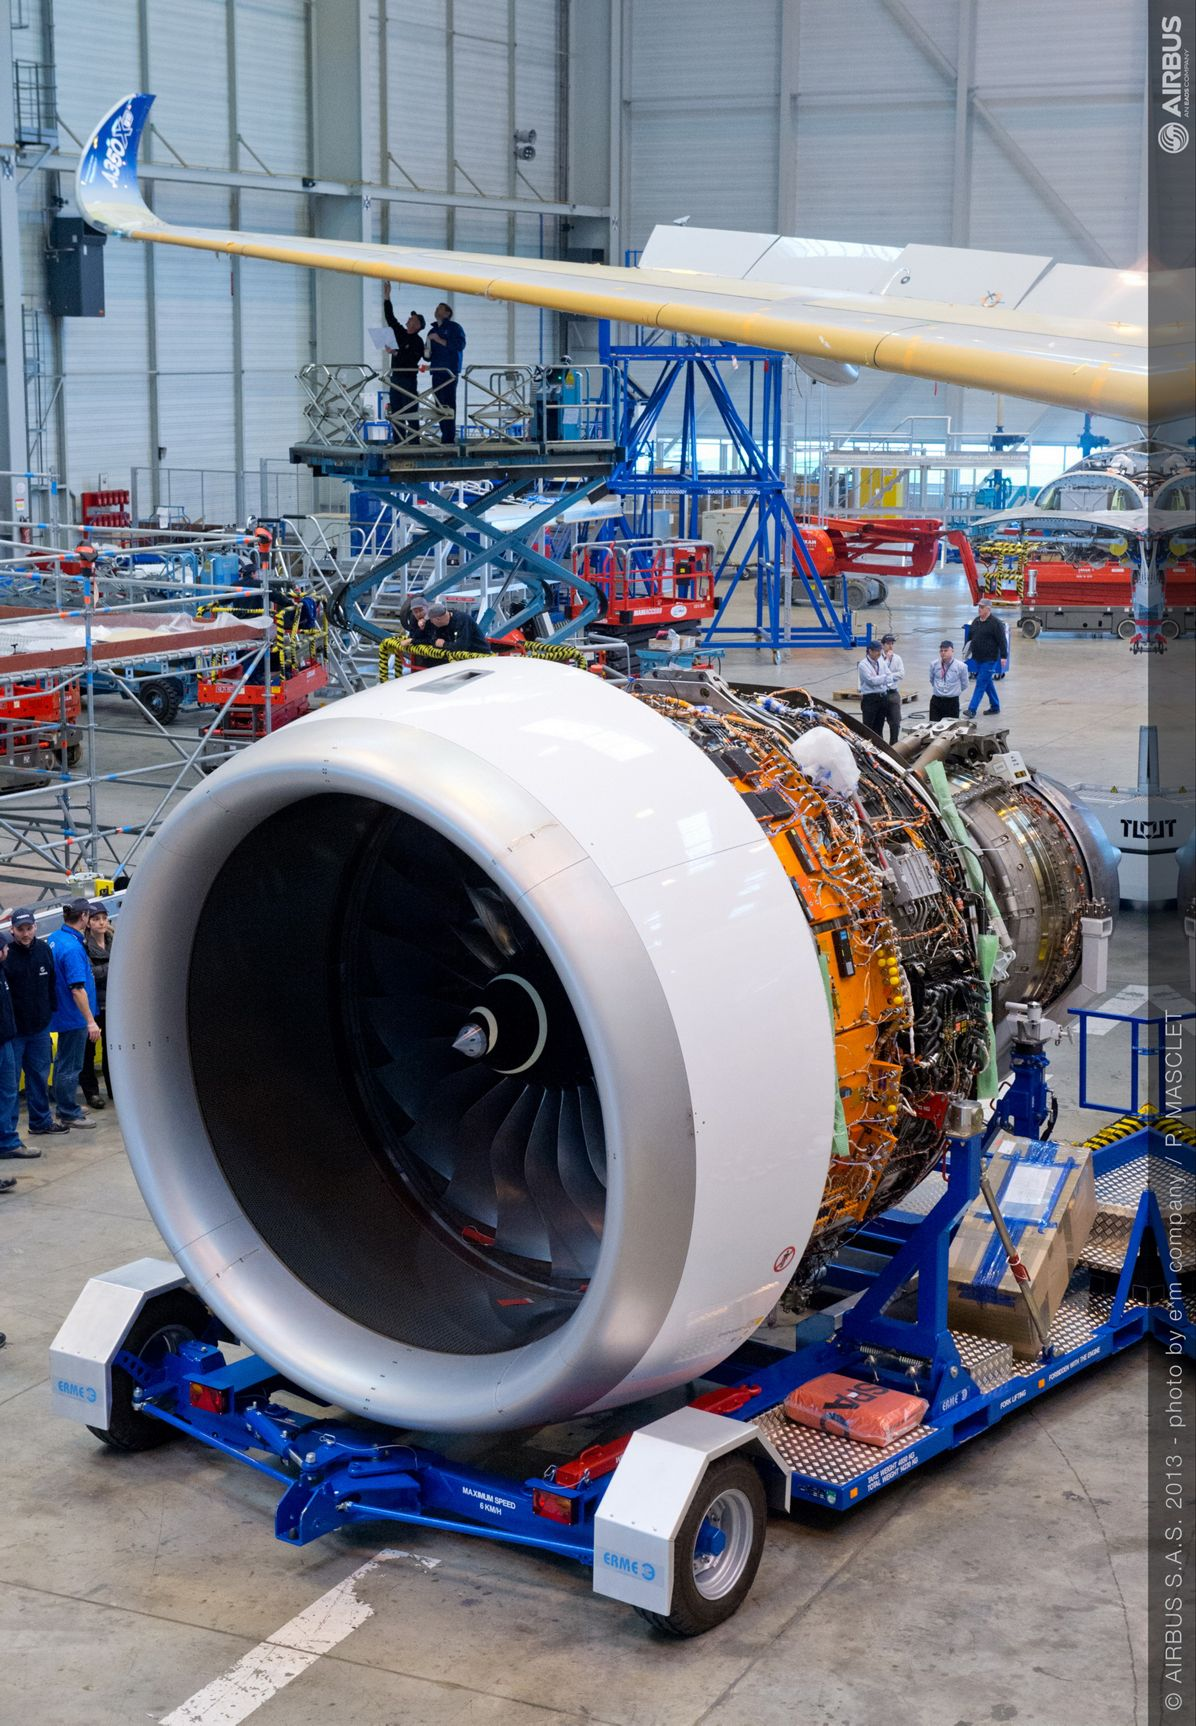 A350 XWB Trent engine installation